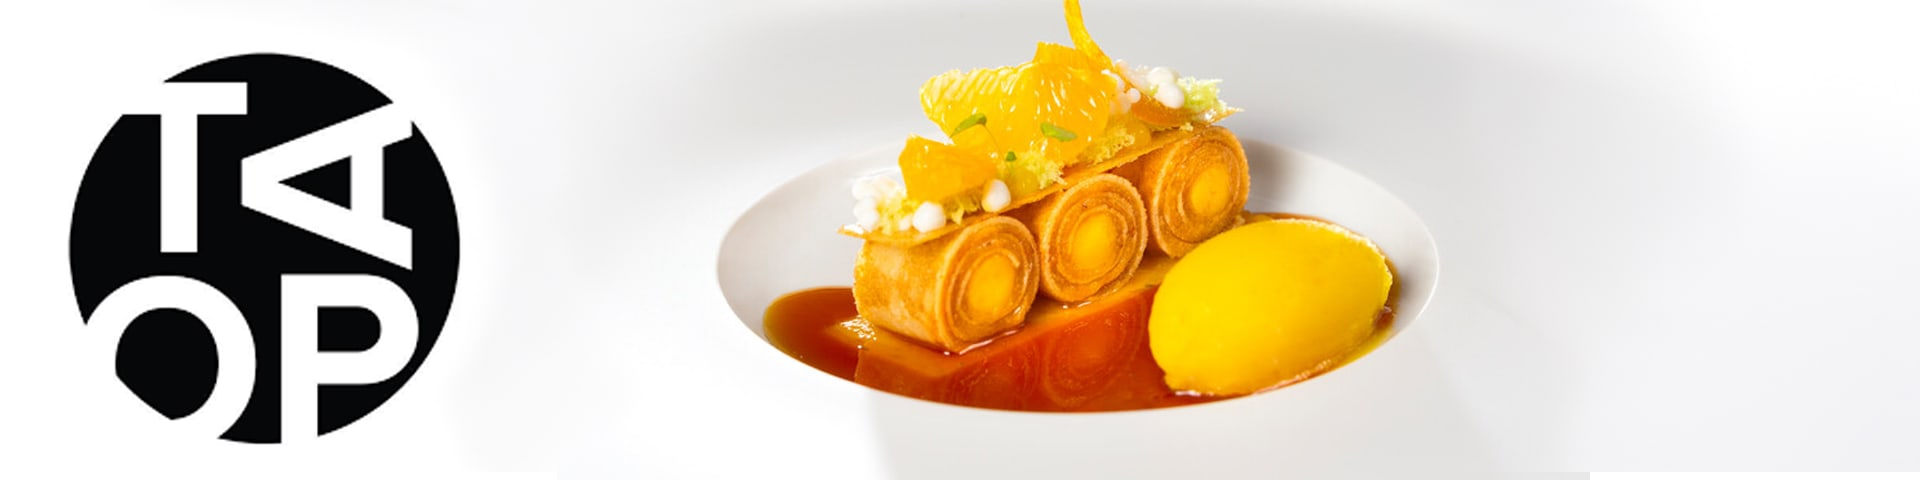 The Art Of Plating Image